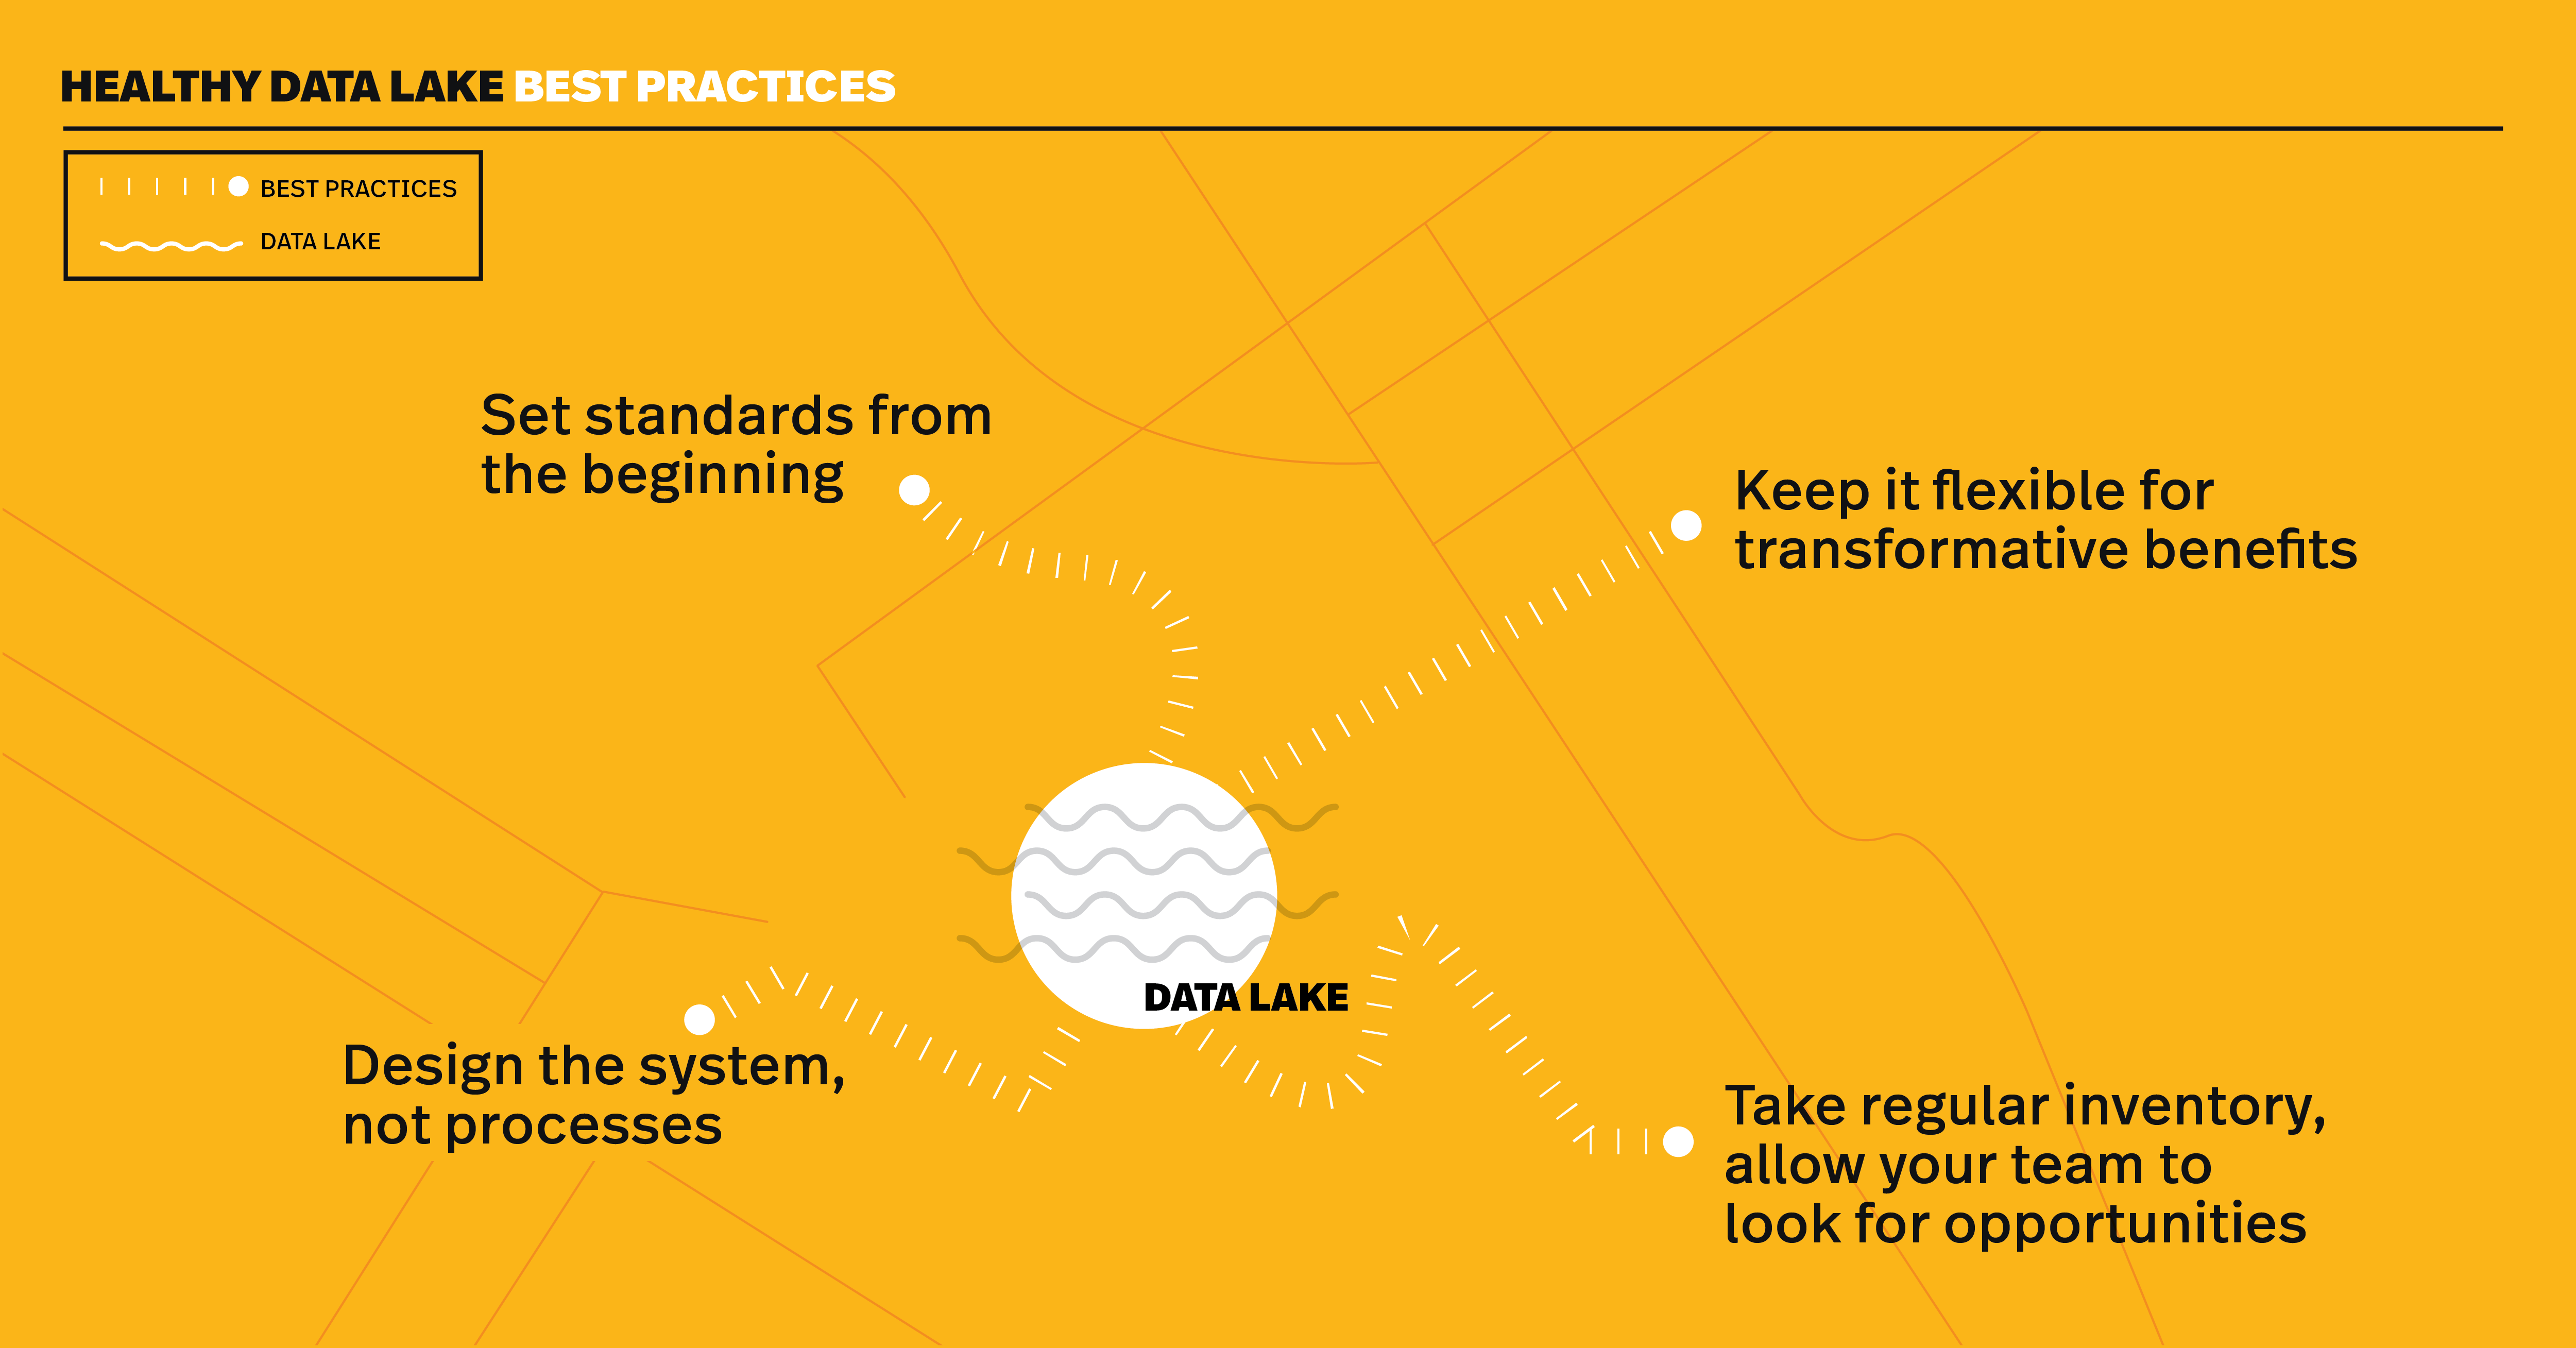 Data Lake Best Practices: Prevent Your Data Lake from Turning into a Data Swamp